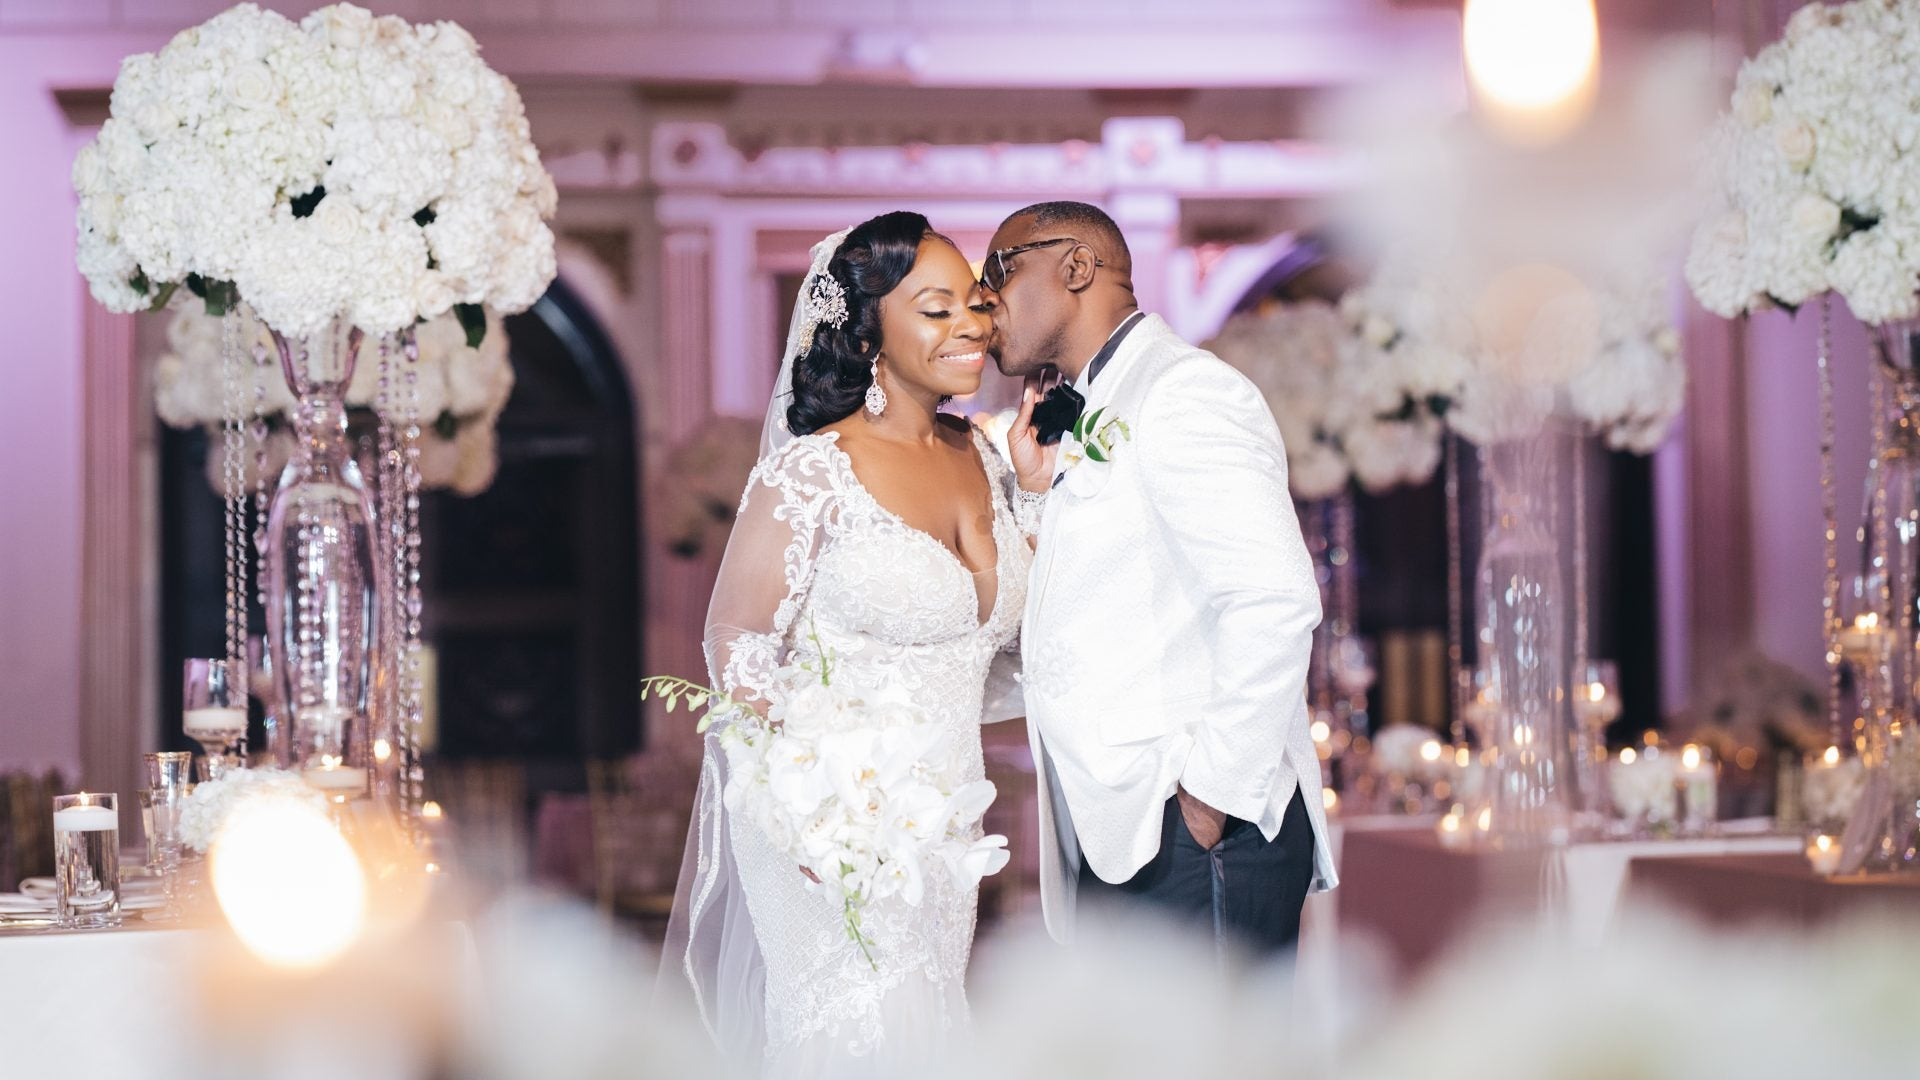 Bridal Bliss: Mia And William's Upscale Glam Wedding